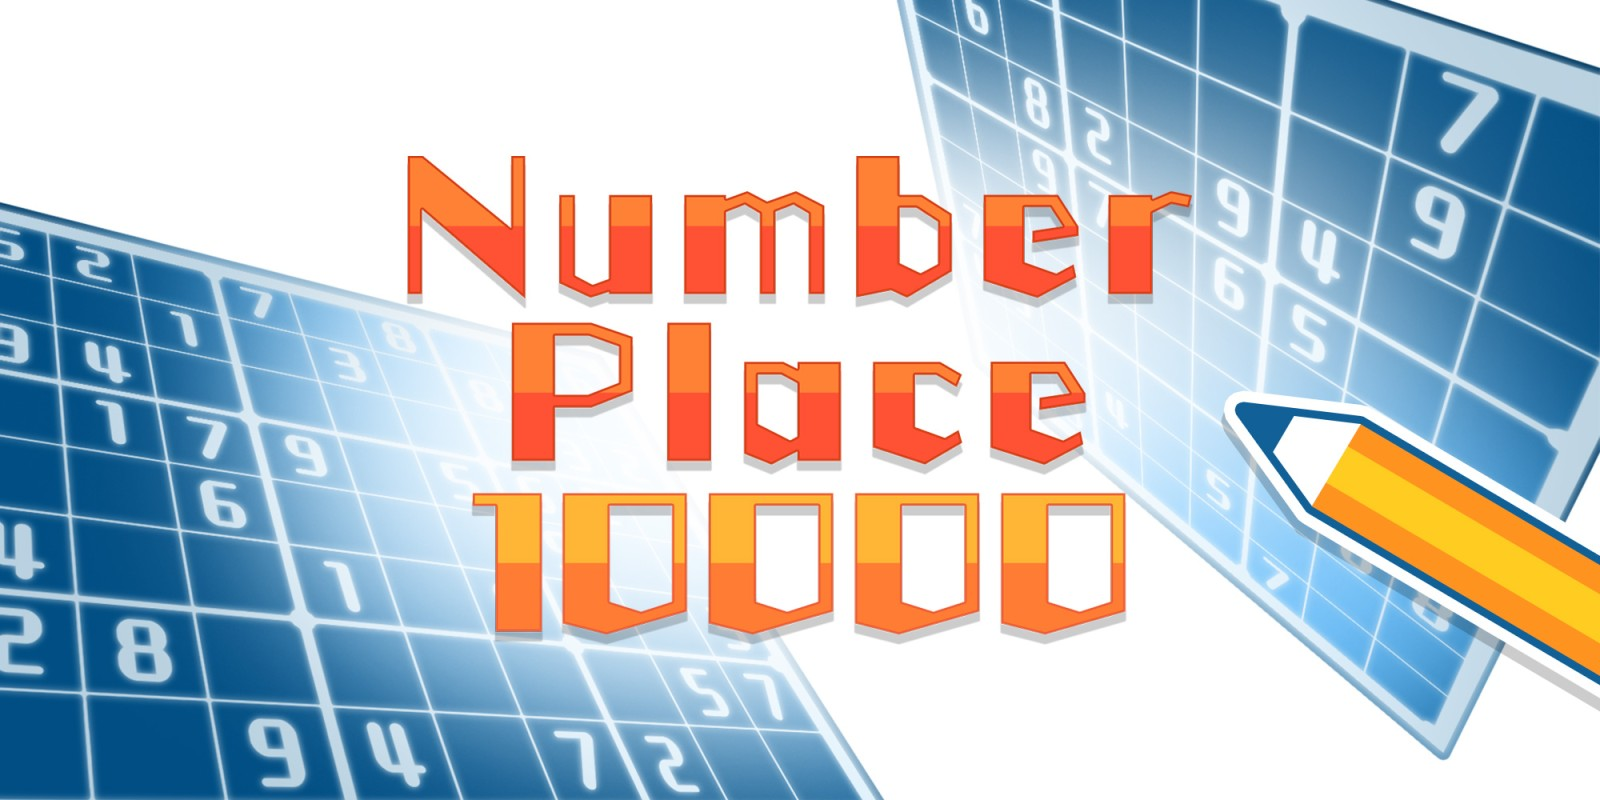 Number Place 10000